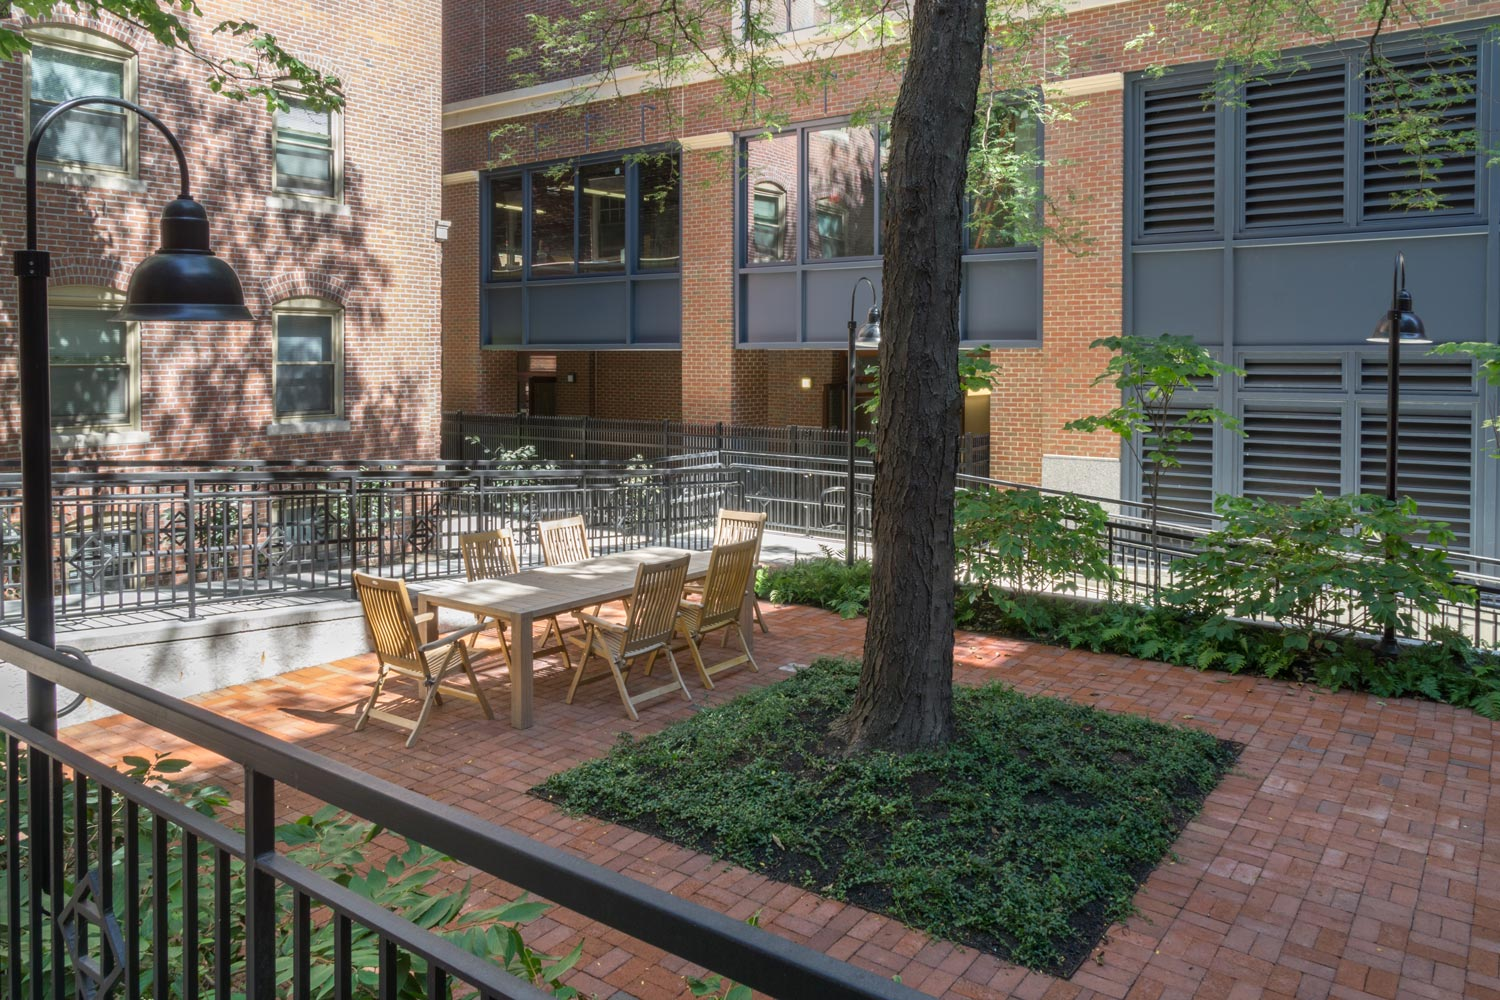 Landscape Architecture for Mixed-Use Affordable Housing